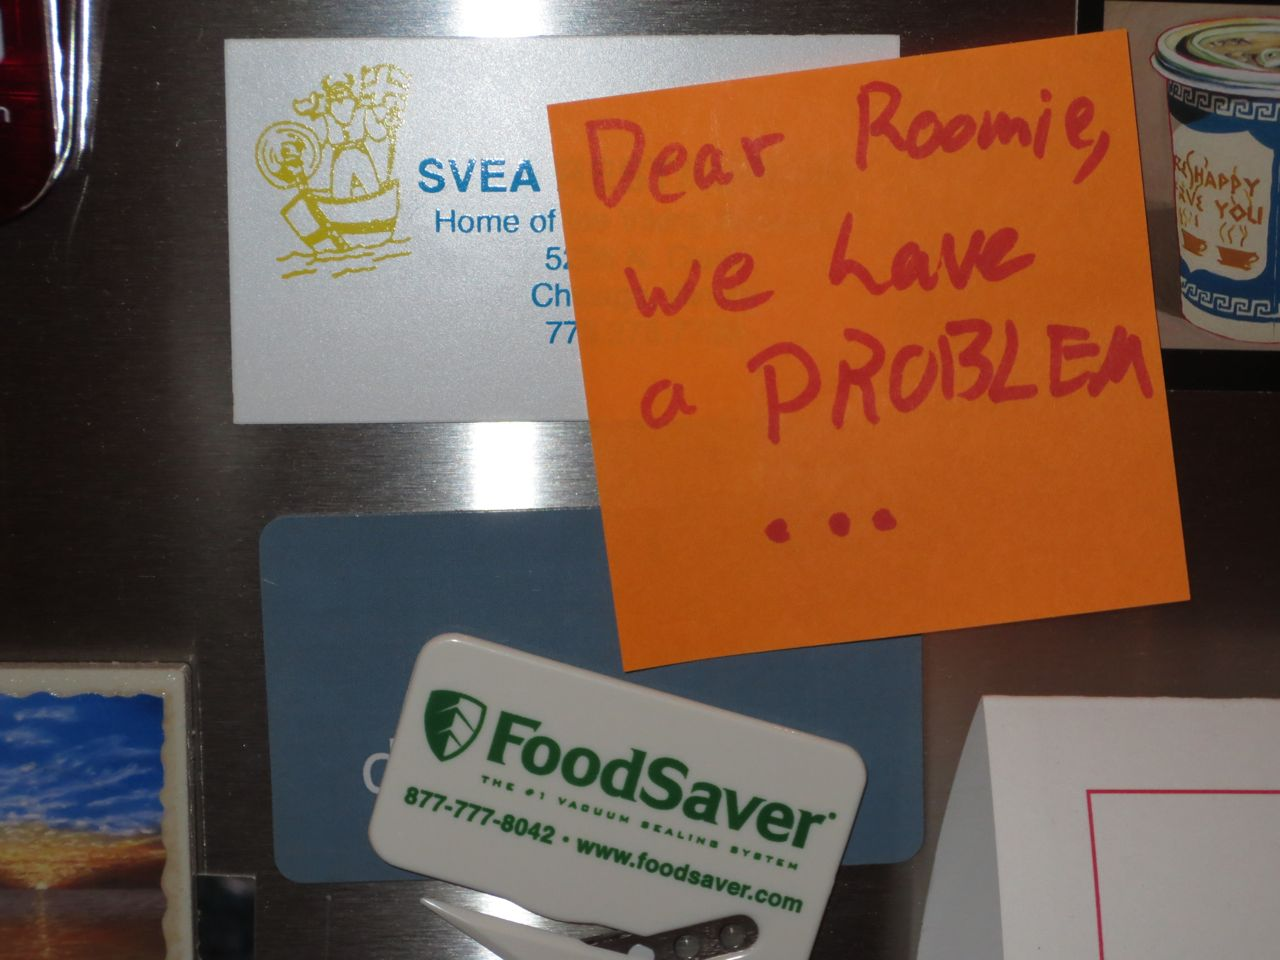 Mark Roemer image of a note left on the refrigerator by a roommate